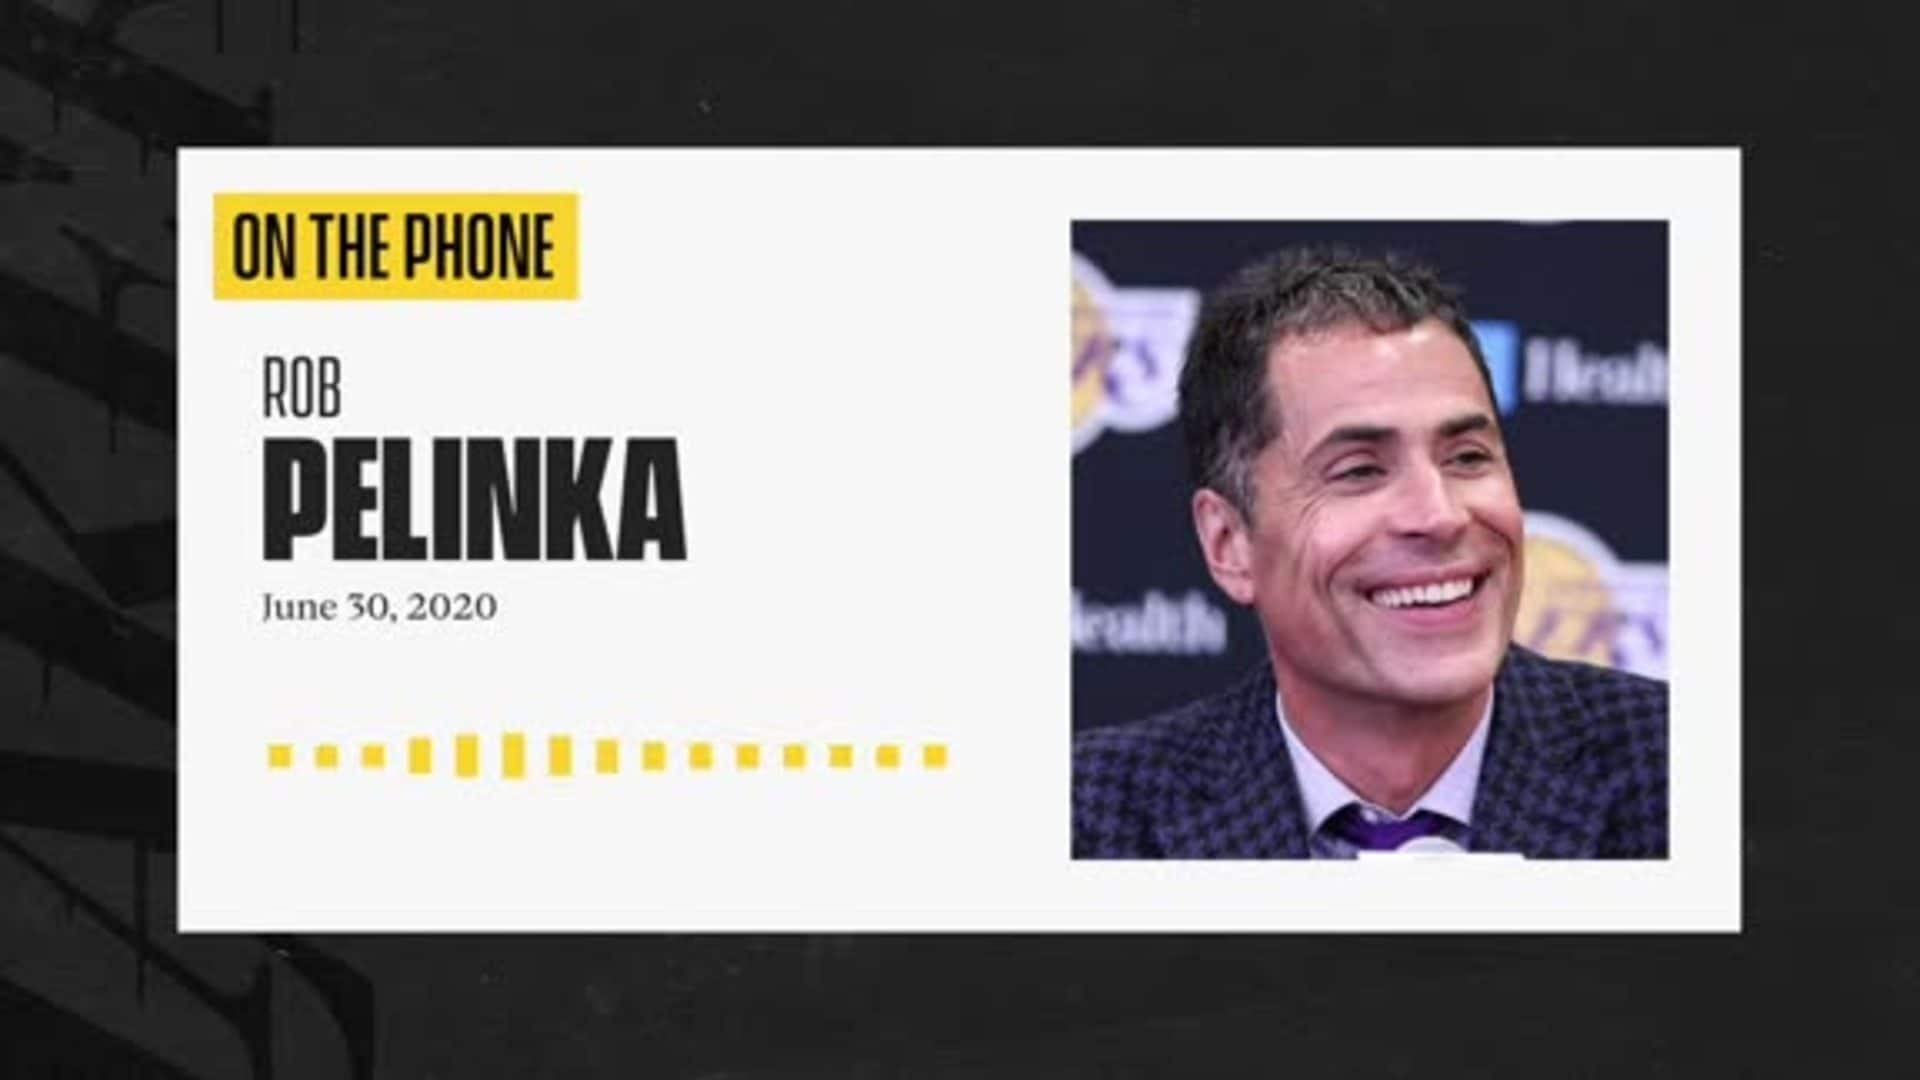 Press Conference: Rob Pelinka (6/30/20)